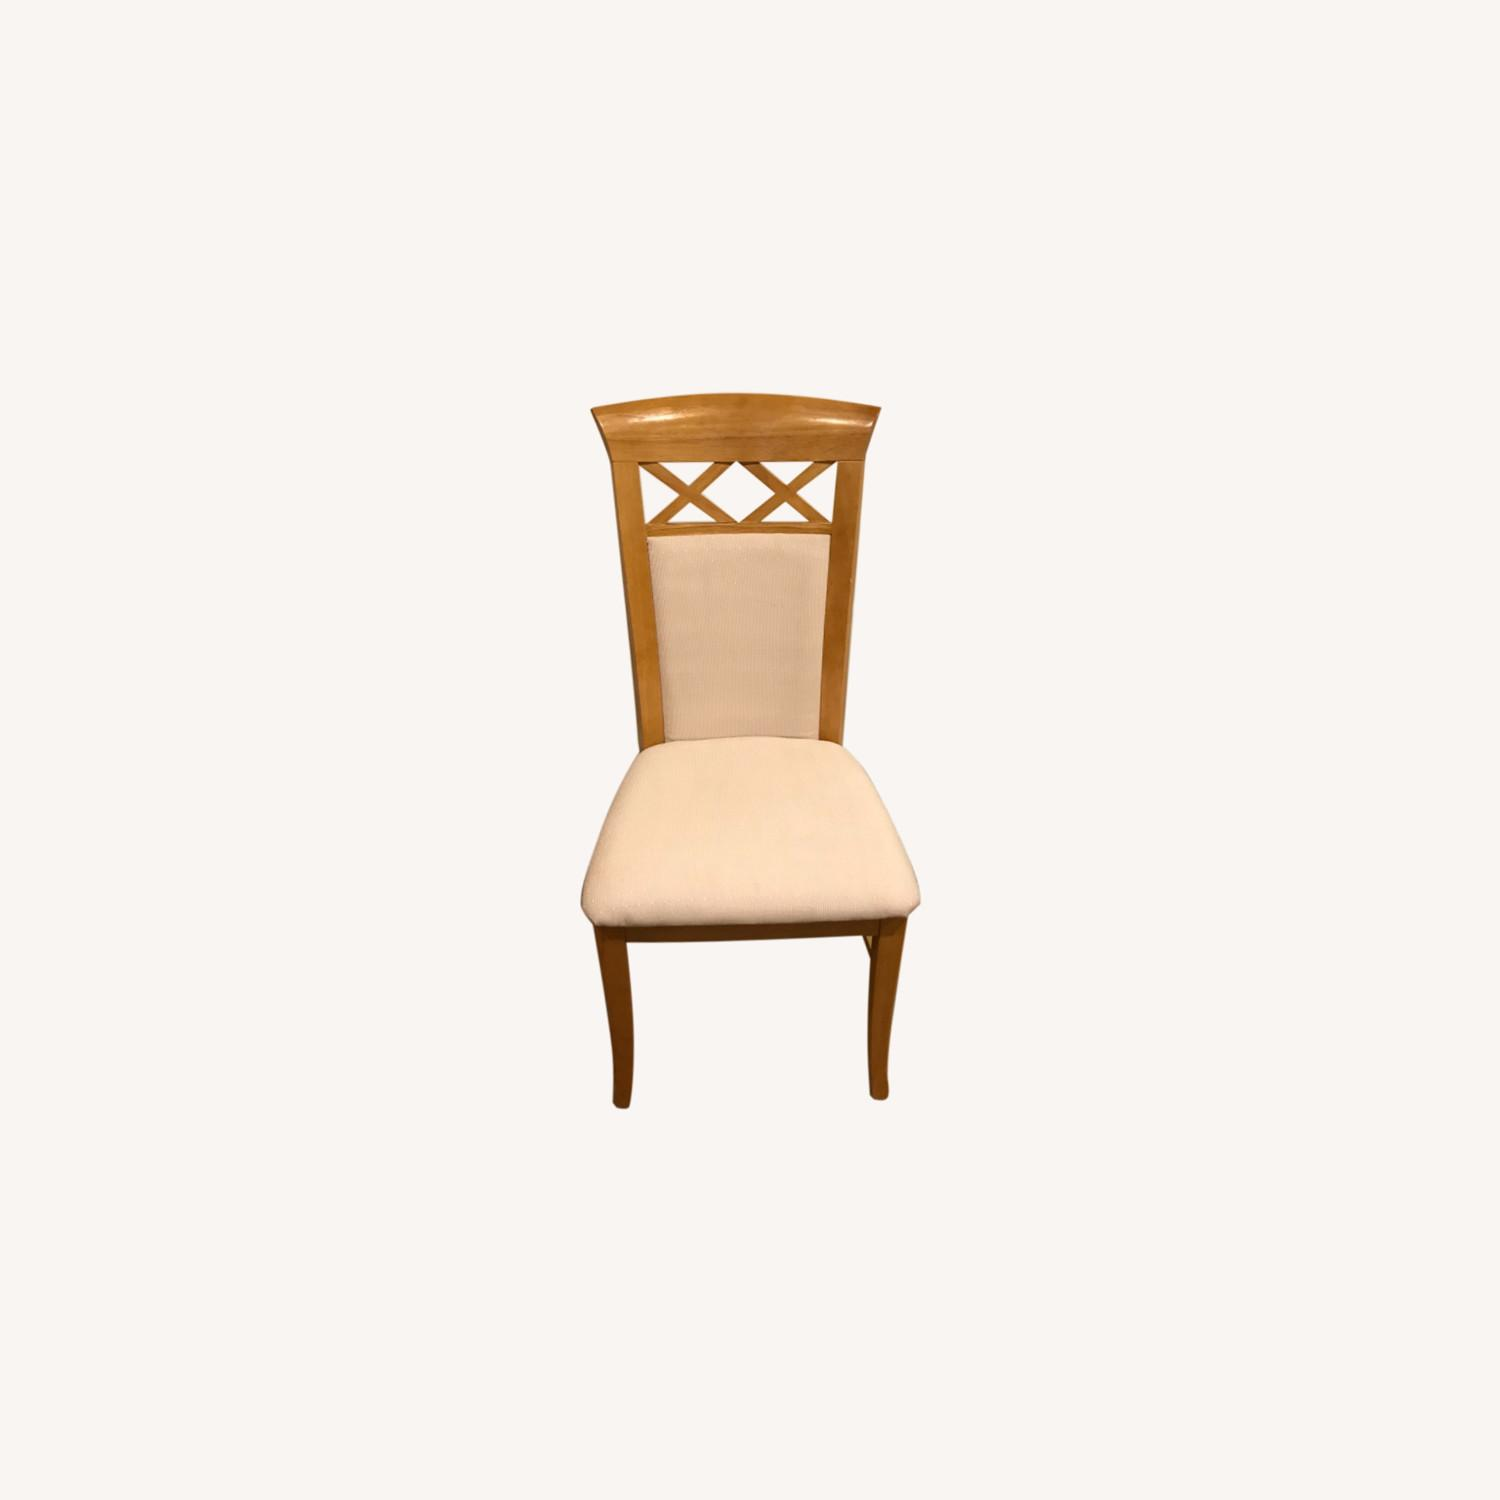 Levitz Furniture Dining Chairs - image-4